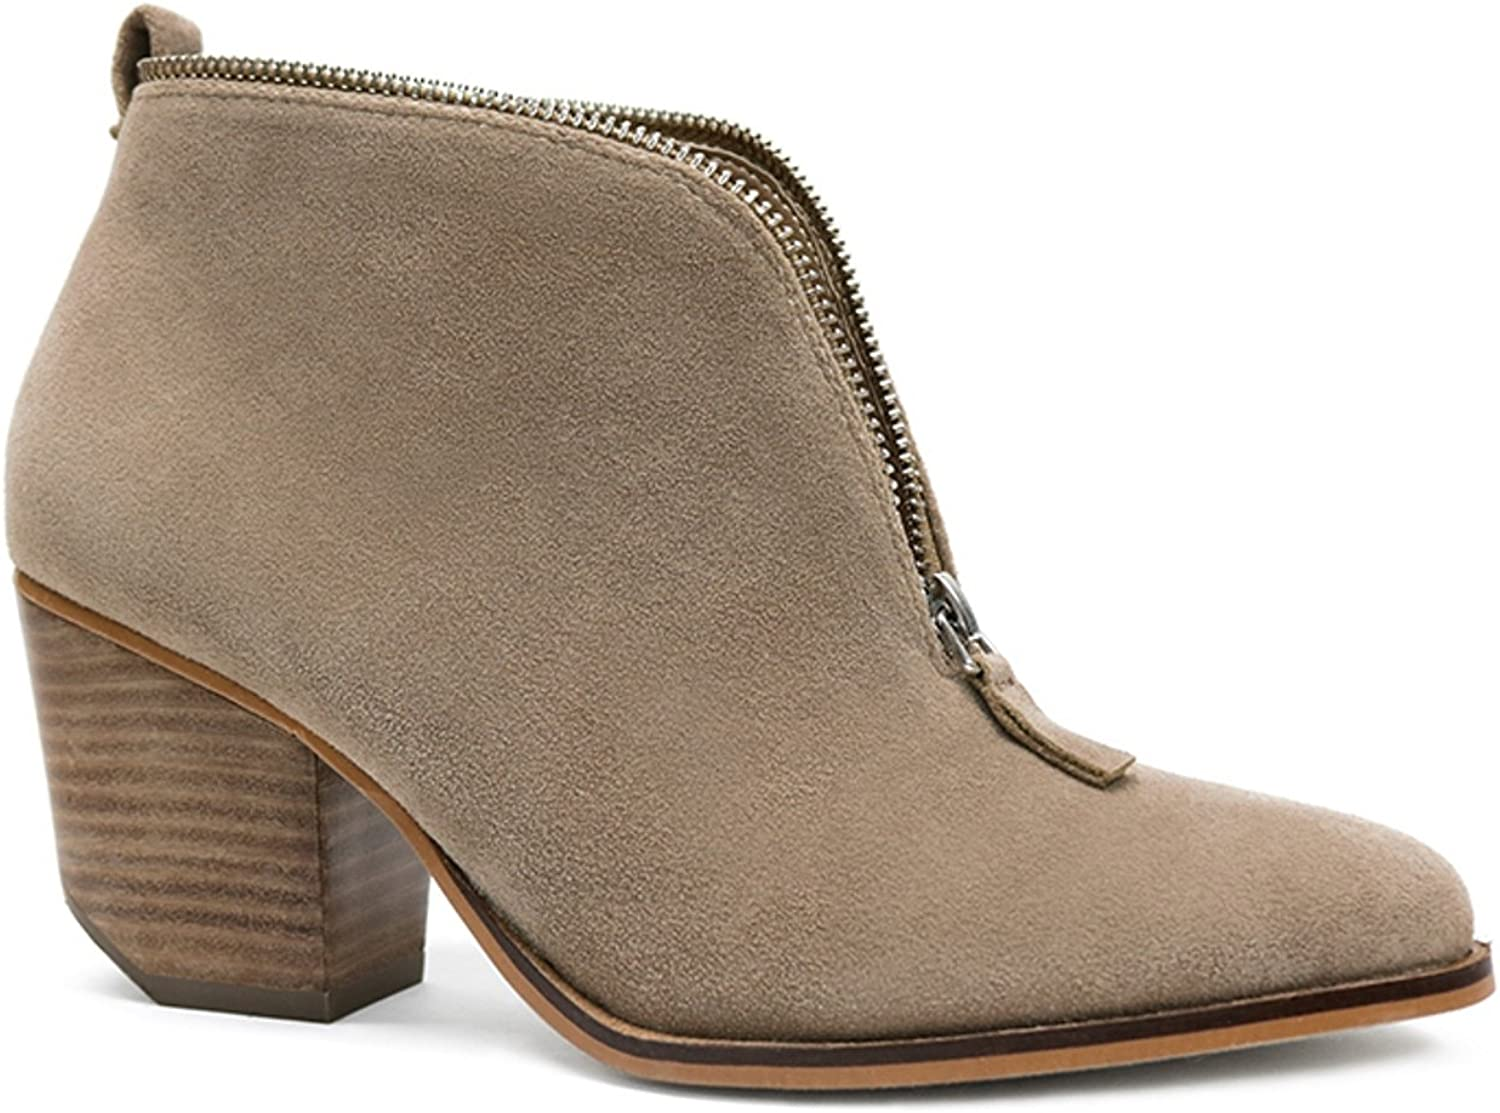 Beast Fashion Carrie-10 Ankle High Stacked Leather Heel Zipper Booties